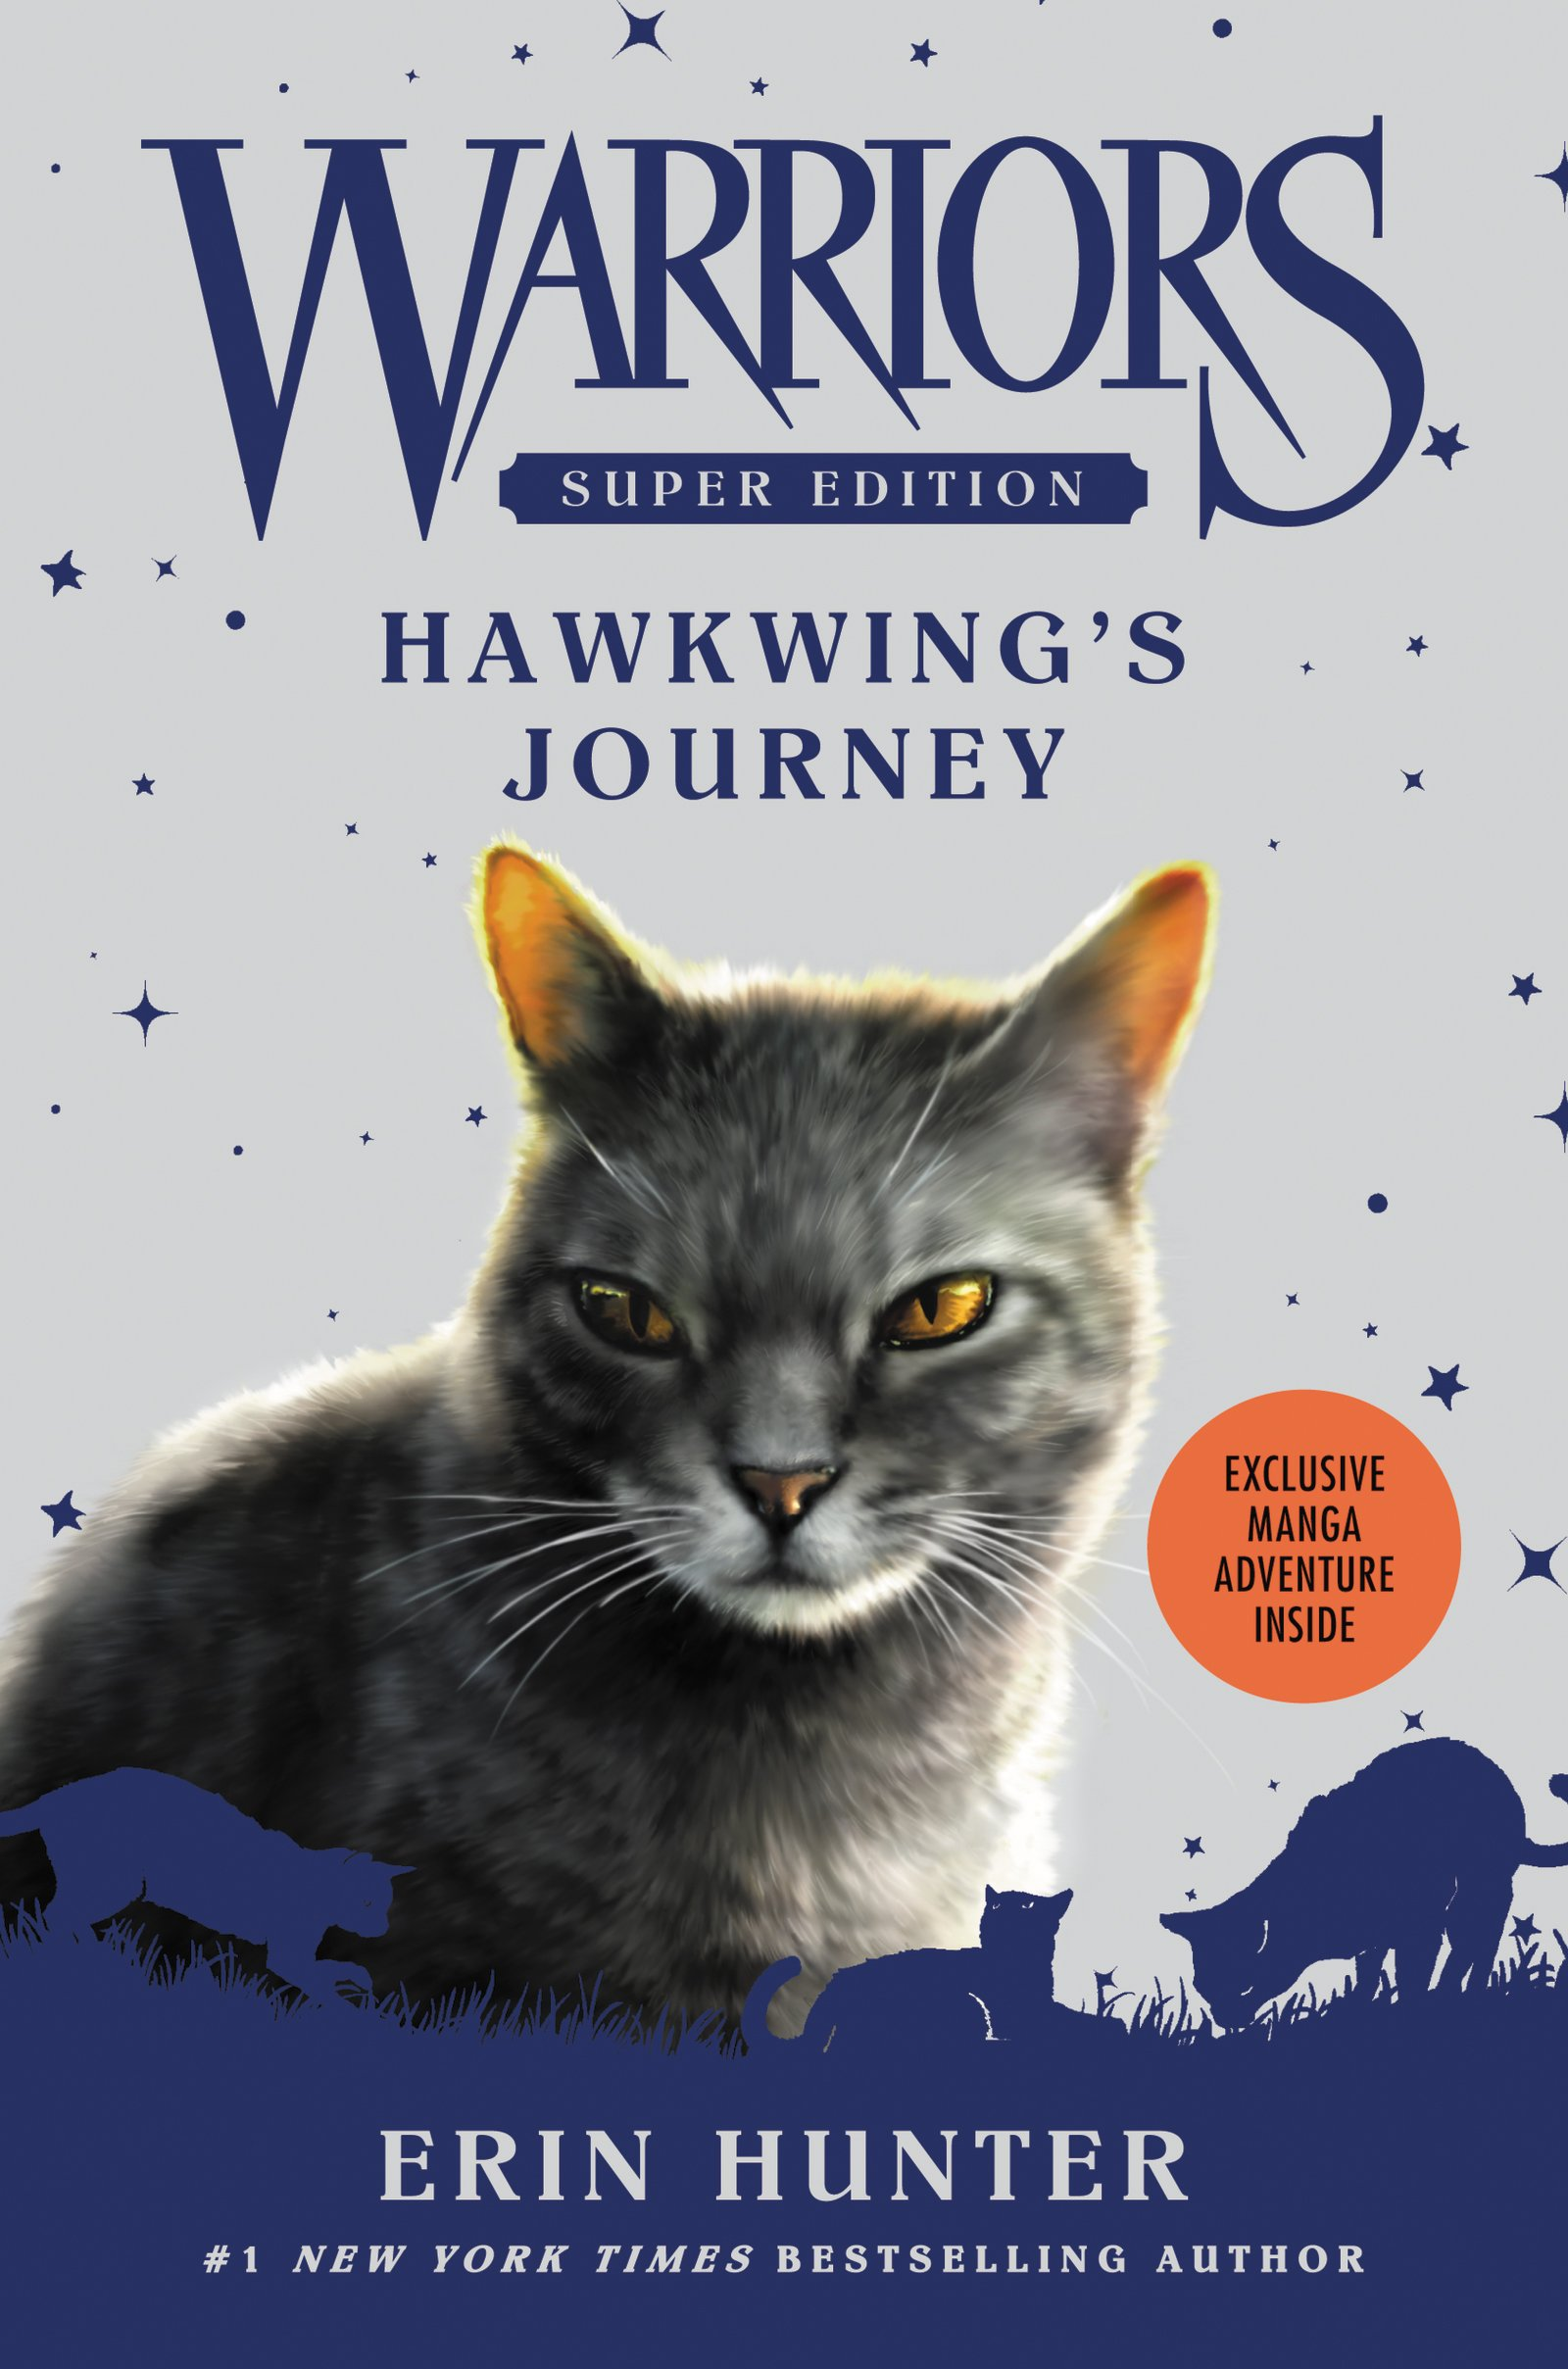 Warriors Super Edition: Hawkwing's Journey: Erin Hunter, James L Barry:  9780062467690: Amazon: Books